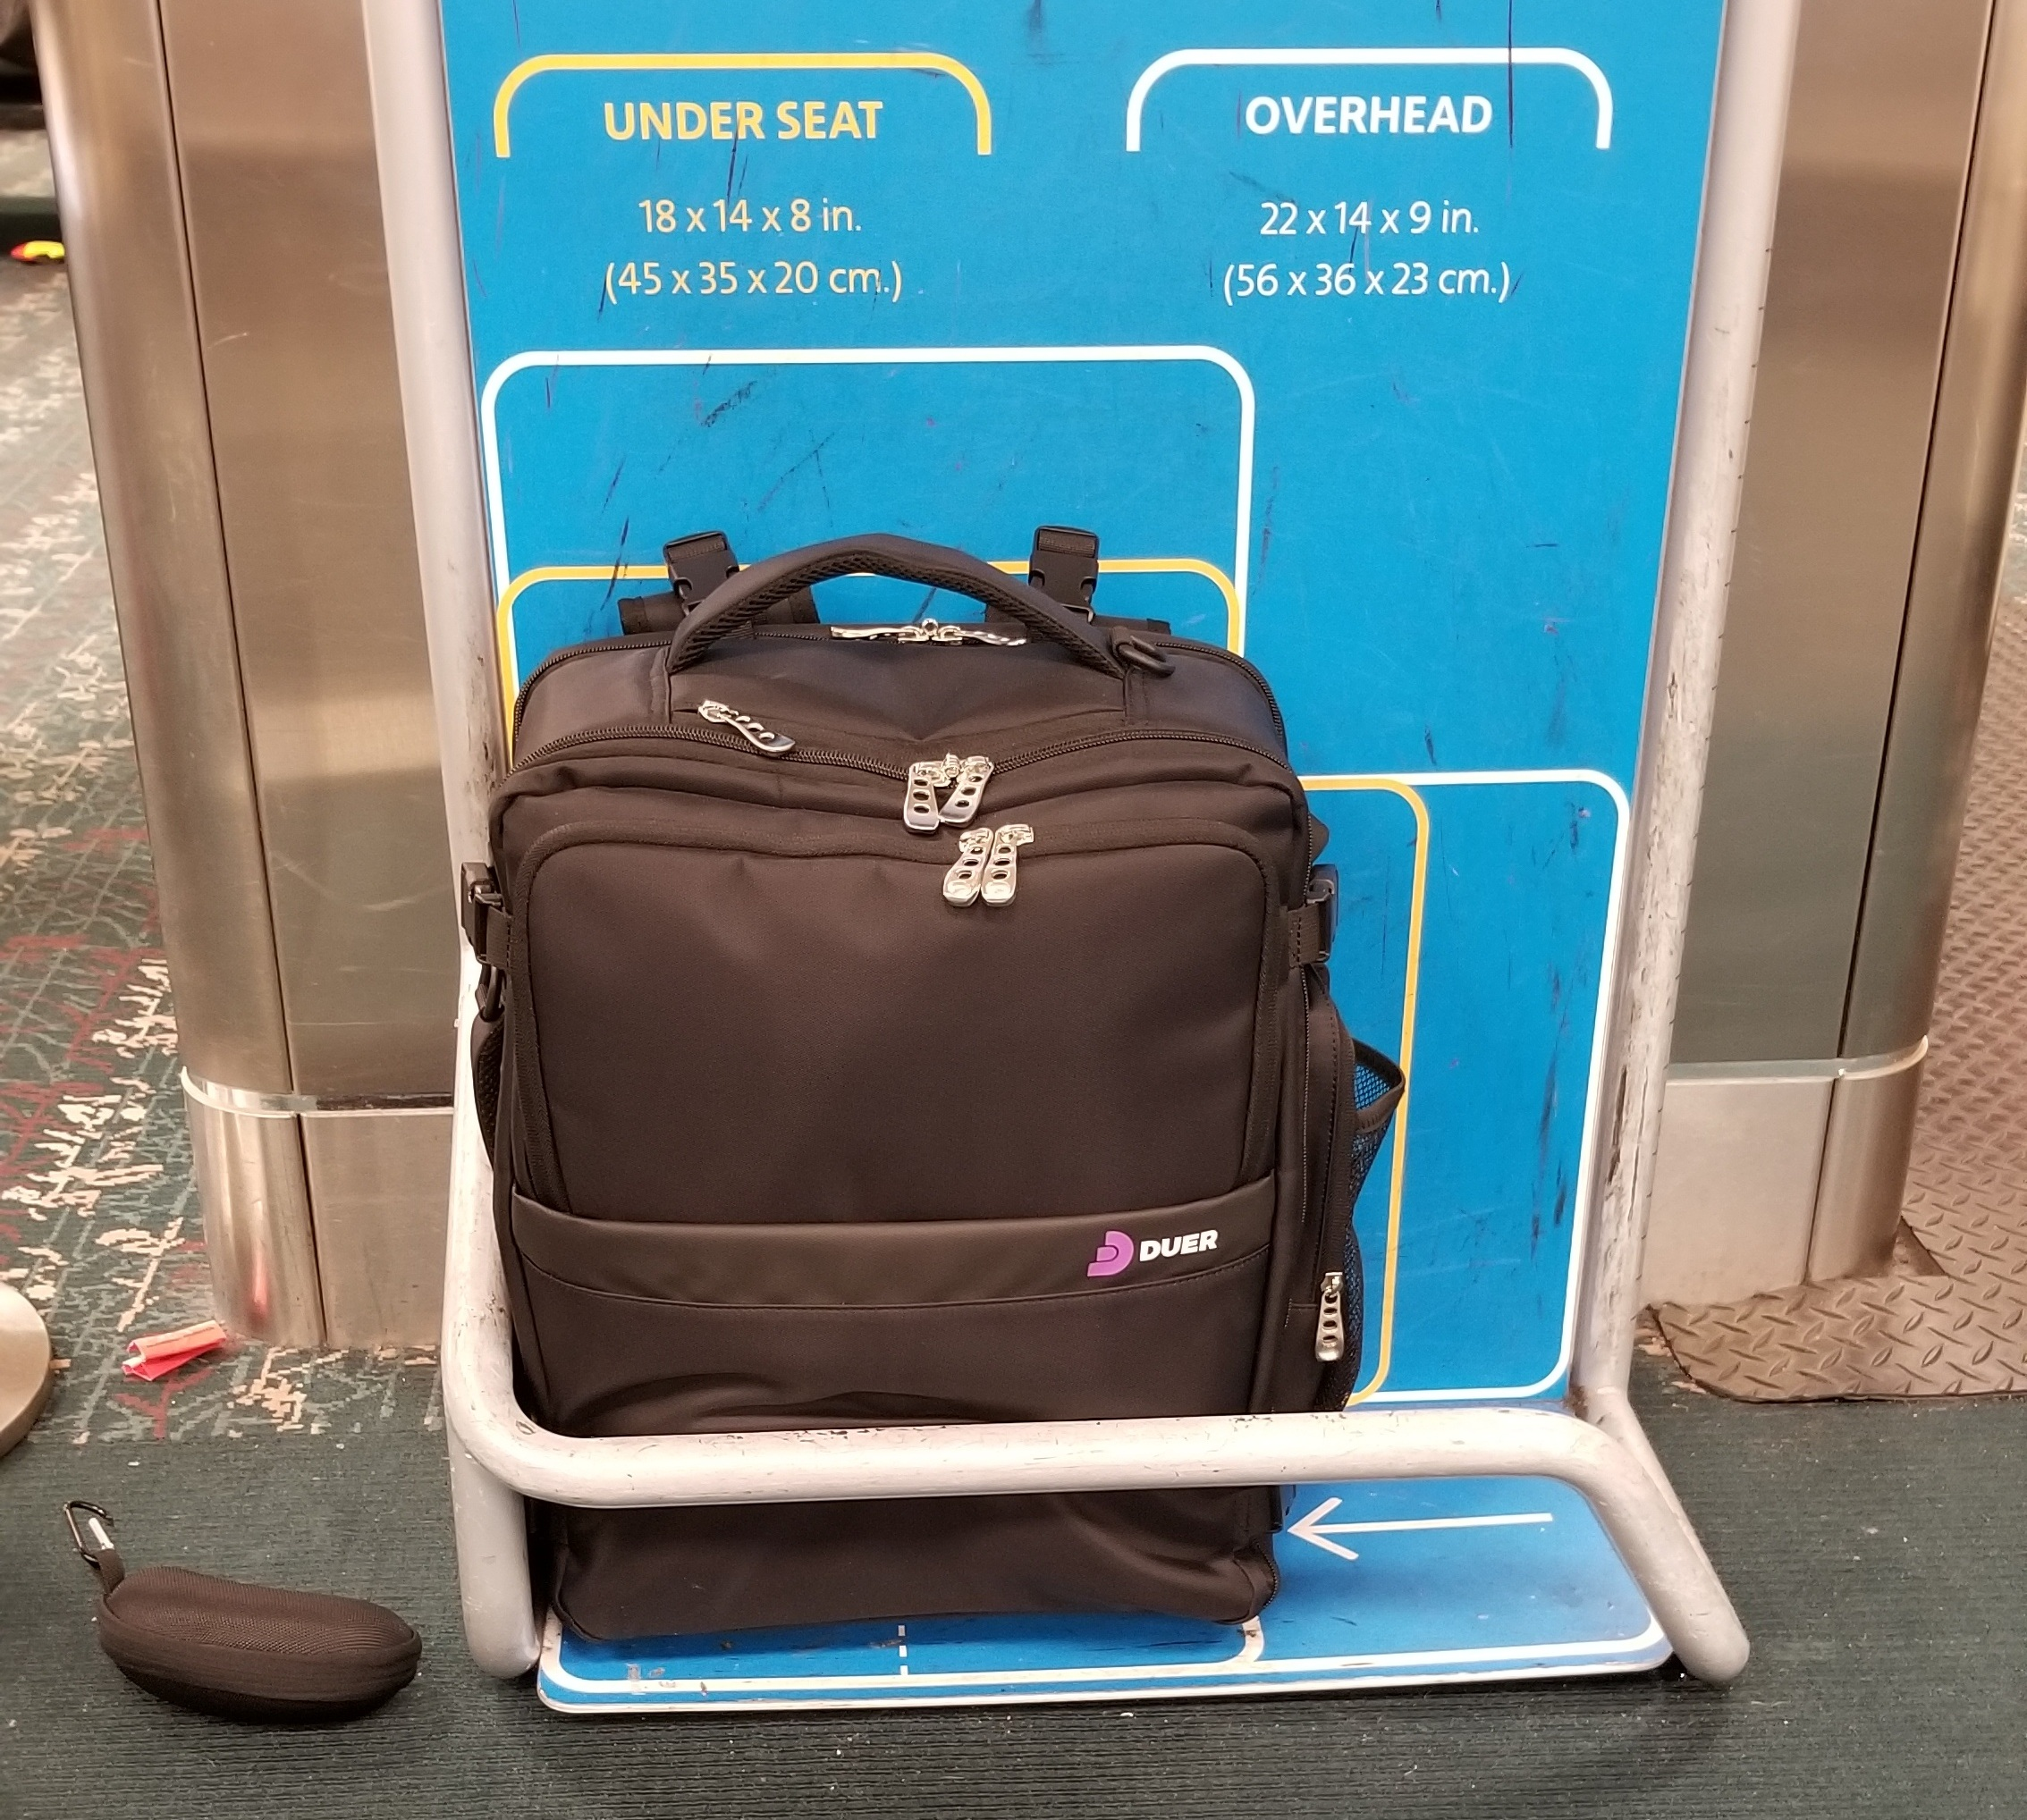 """Under-SeatSizing - Built as a 18"""" x 14"""" x 8"""" bag, the Freedom 9 fits a wide variety of airline size restrictions, making it the ideal choice for today's size restricted air travel."""